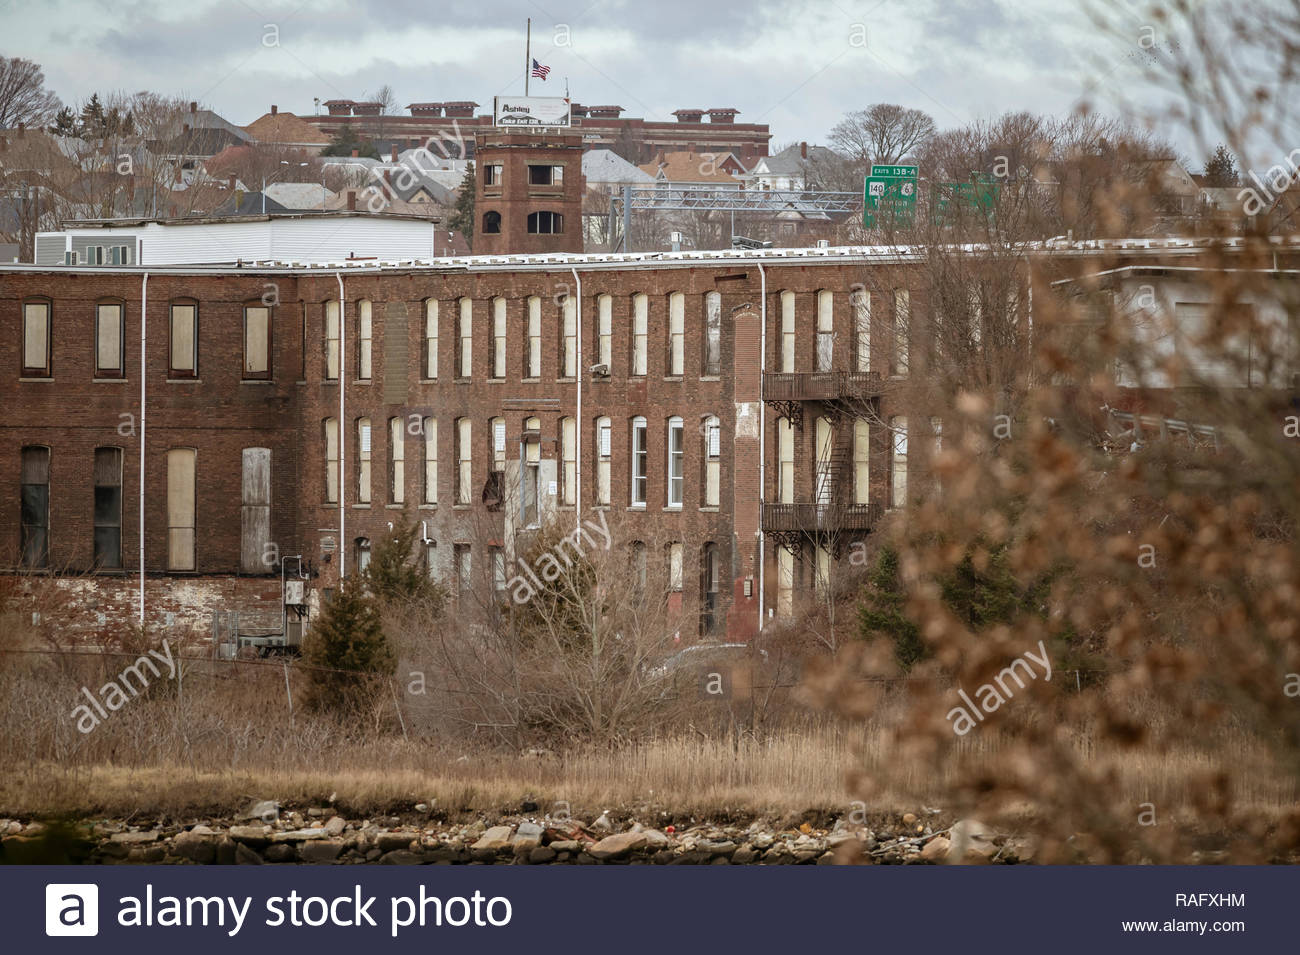 New Bedford, Massachusetts, USA - January 1, 2019: Decrepit factory along New Bedford waterfront north of Fairhaven Bridge - Stock Image